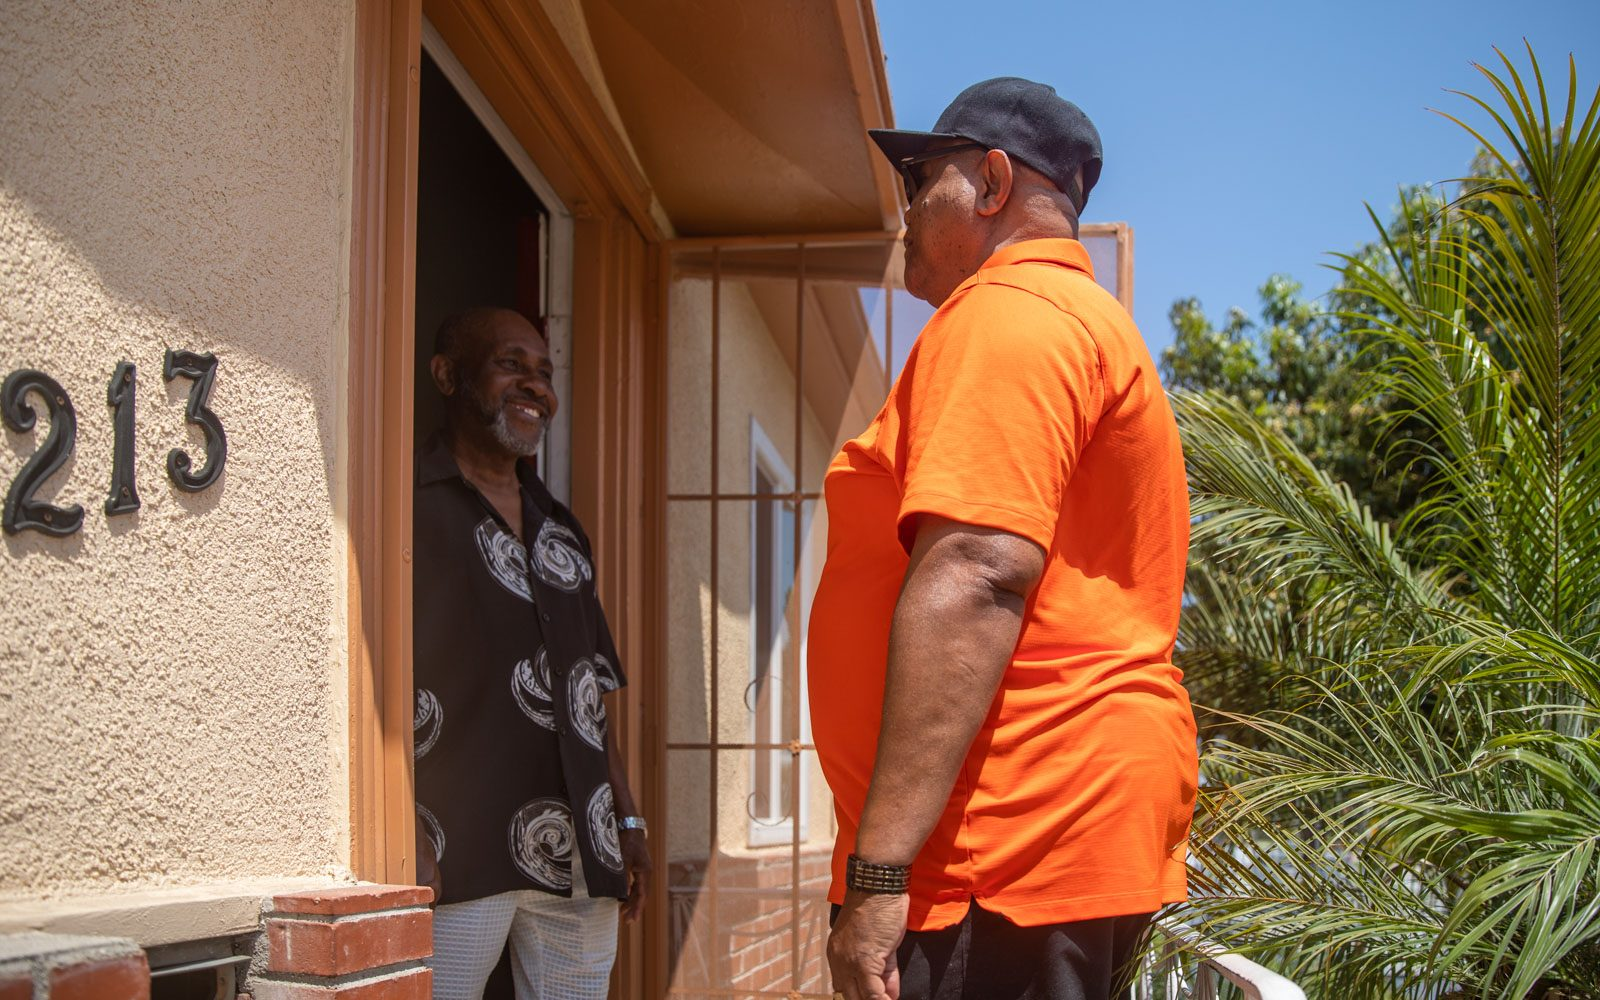 A man wears and orange shirt and black baseball cap and stand at the front door of a home where another man in a black shirt smiles.